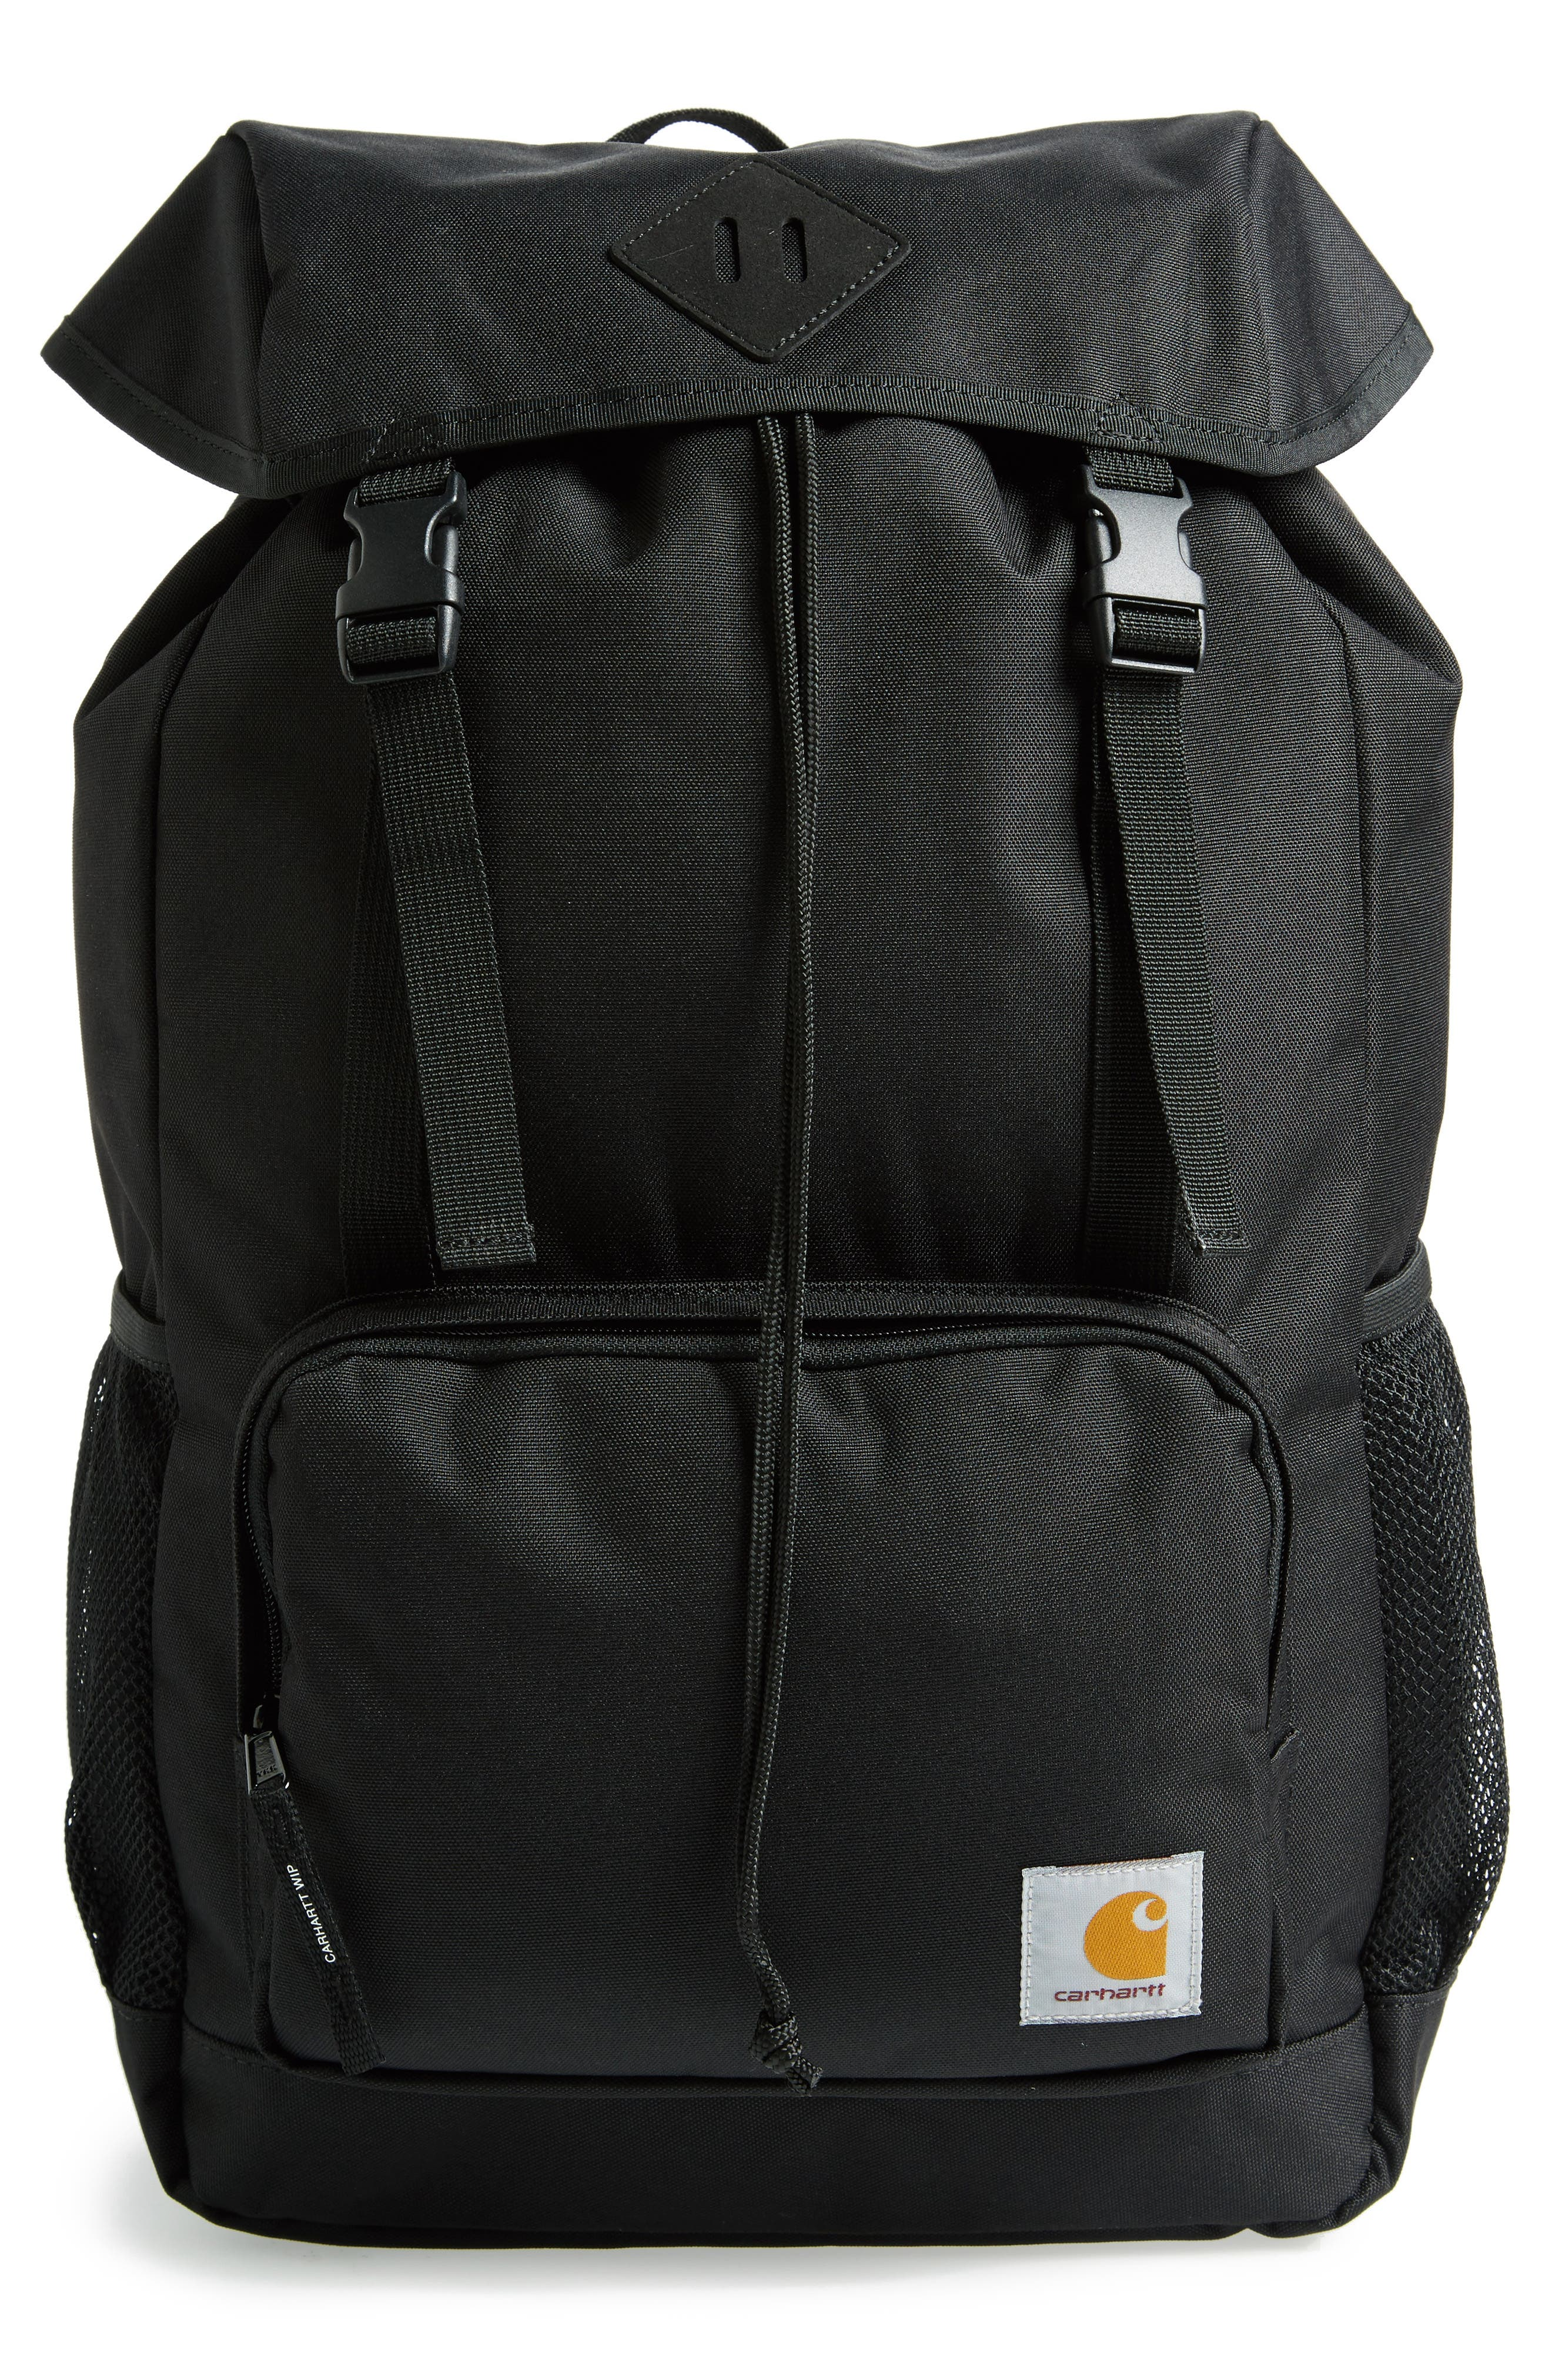 Alternate Image 1 Selected - Carhartt Work in Progress Gard Backpack